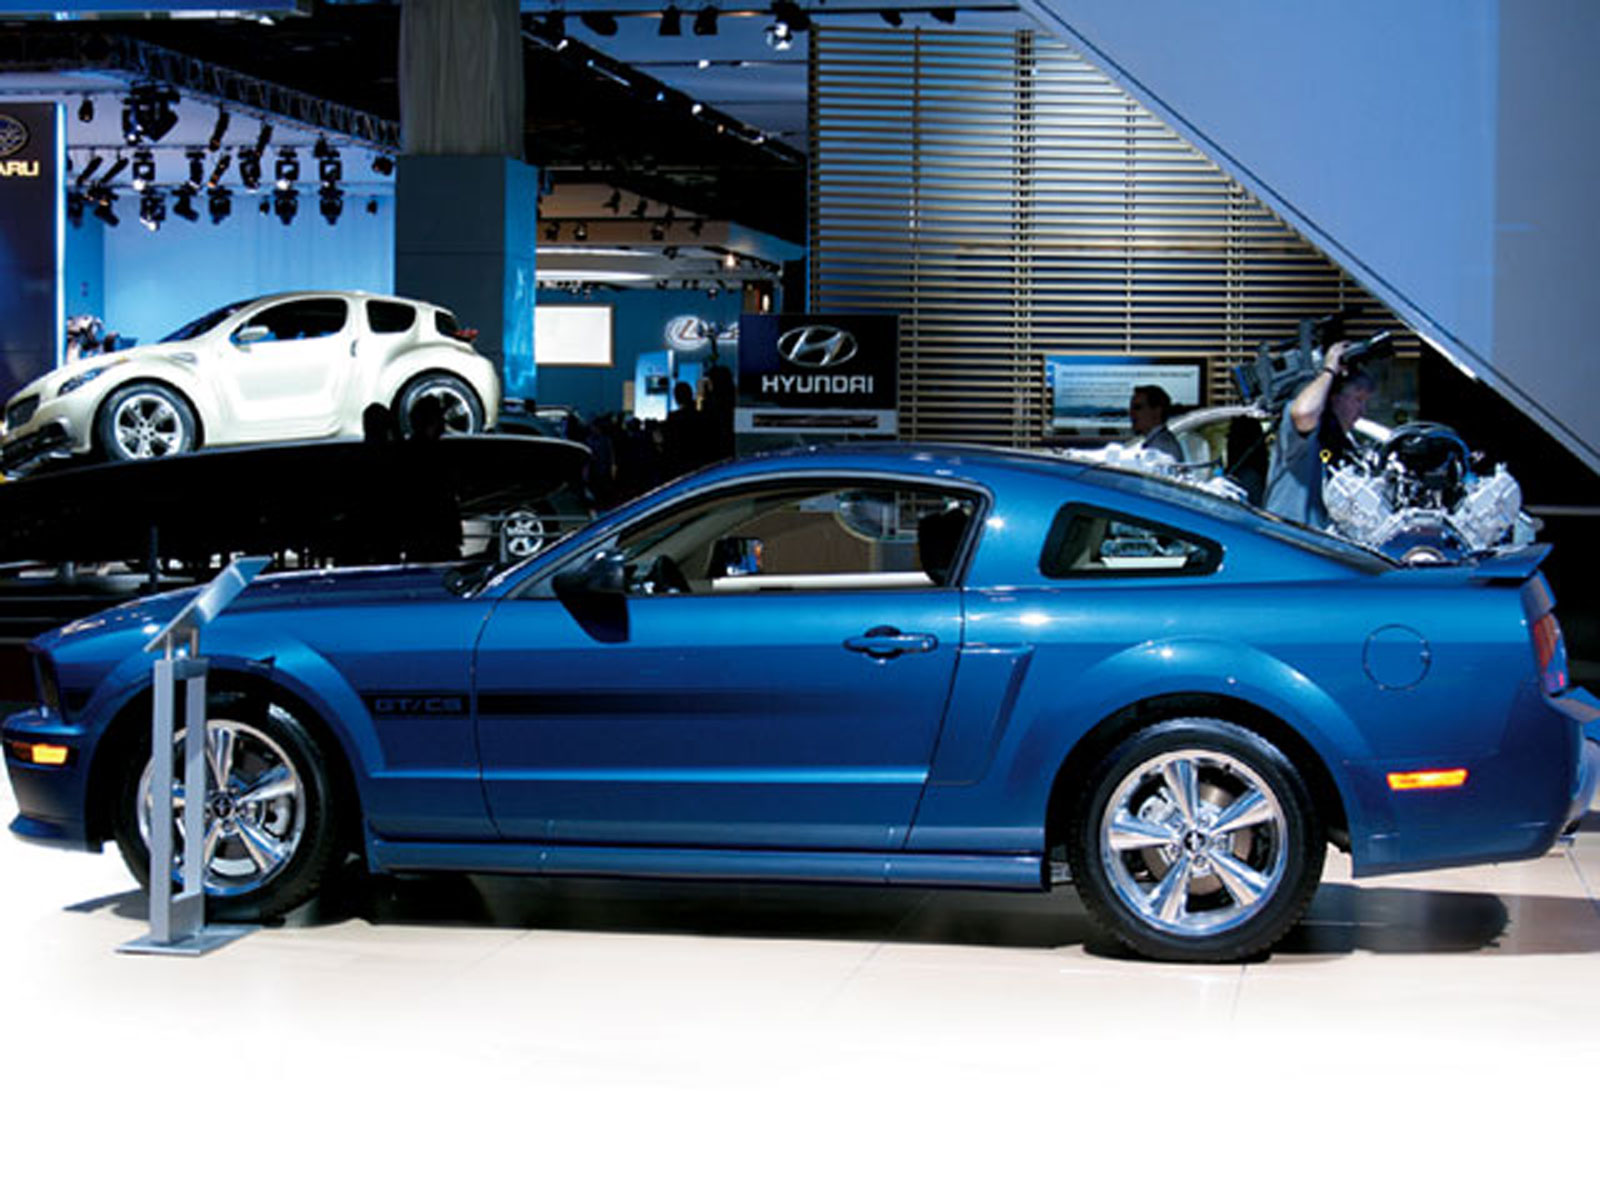 2007 Ford Shelby 500GT Mustang Front View